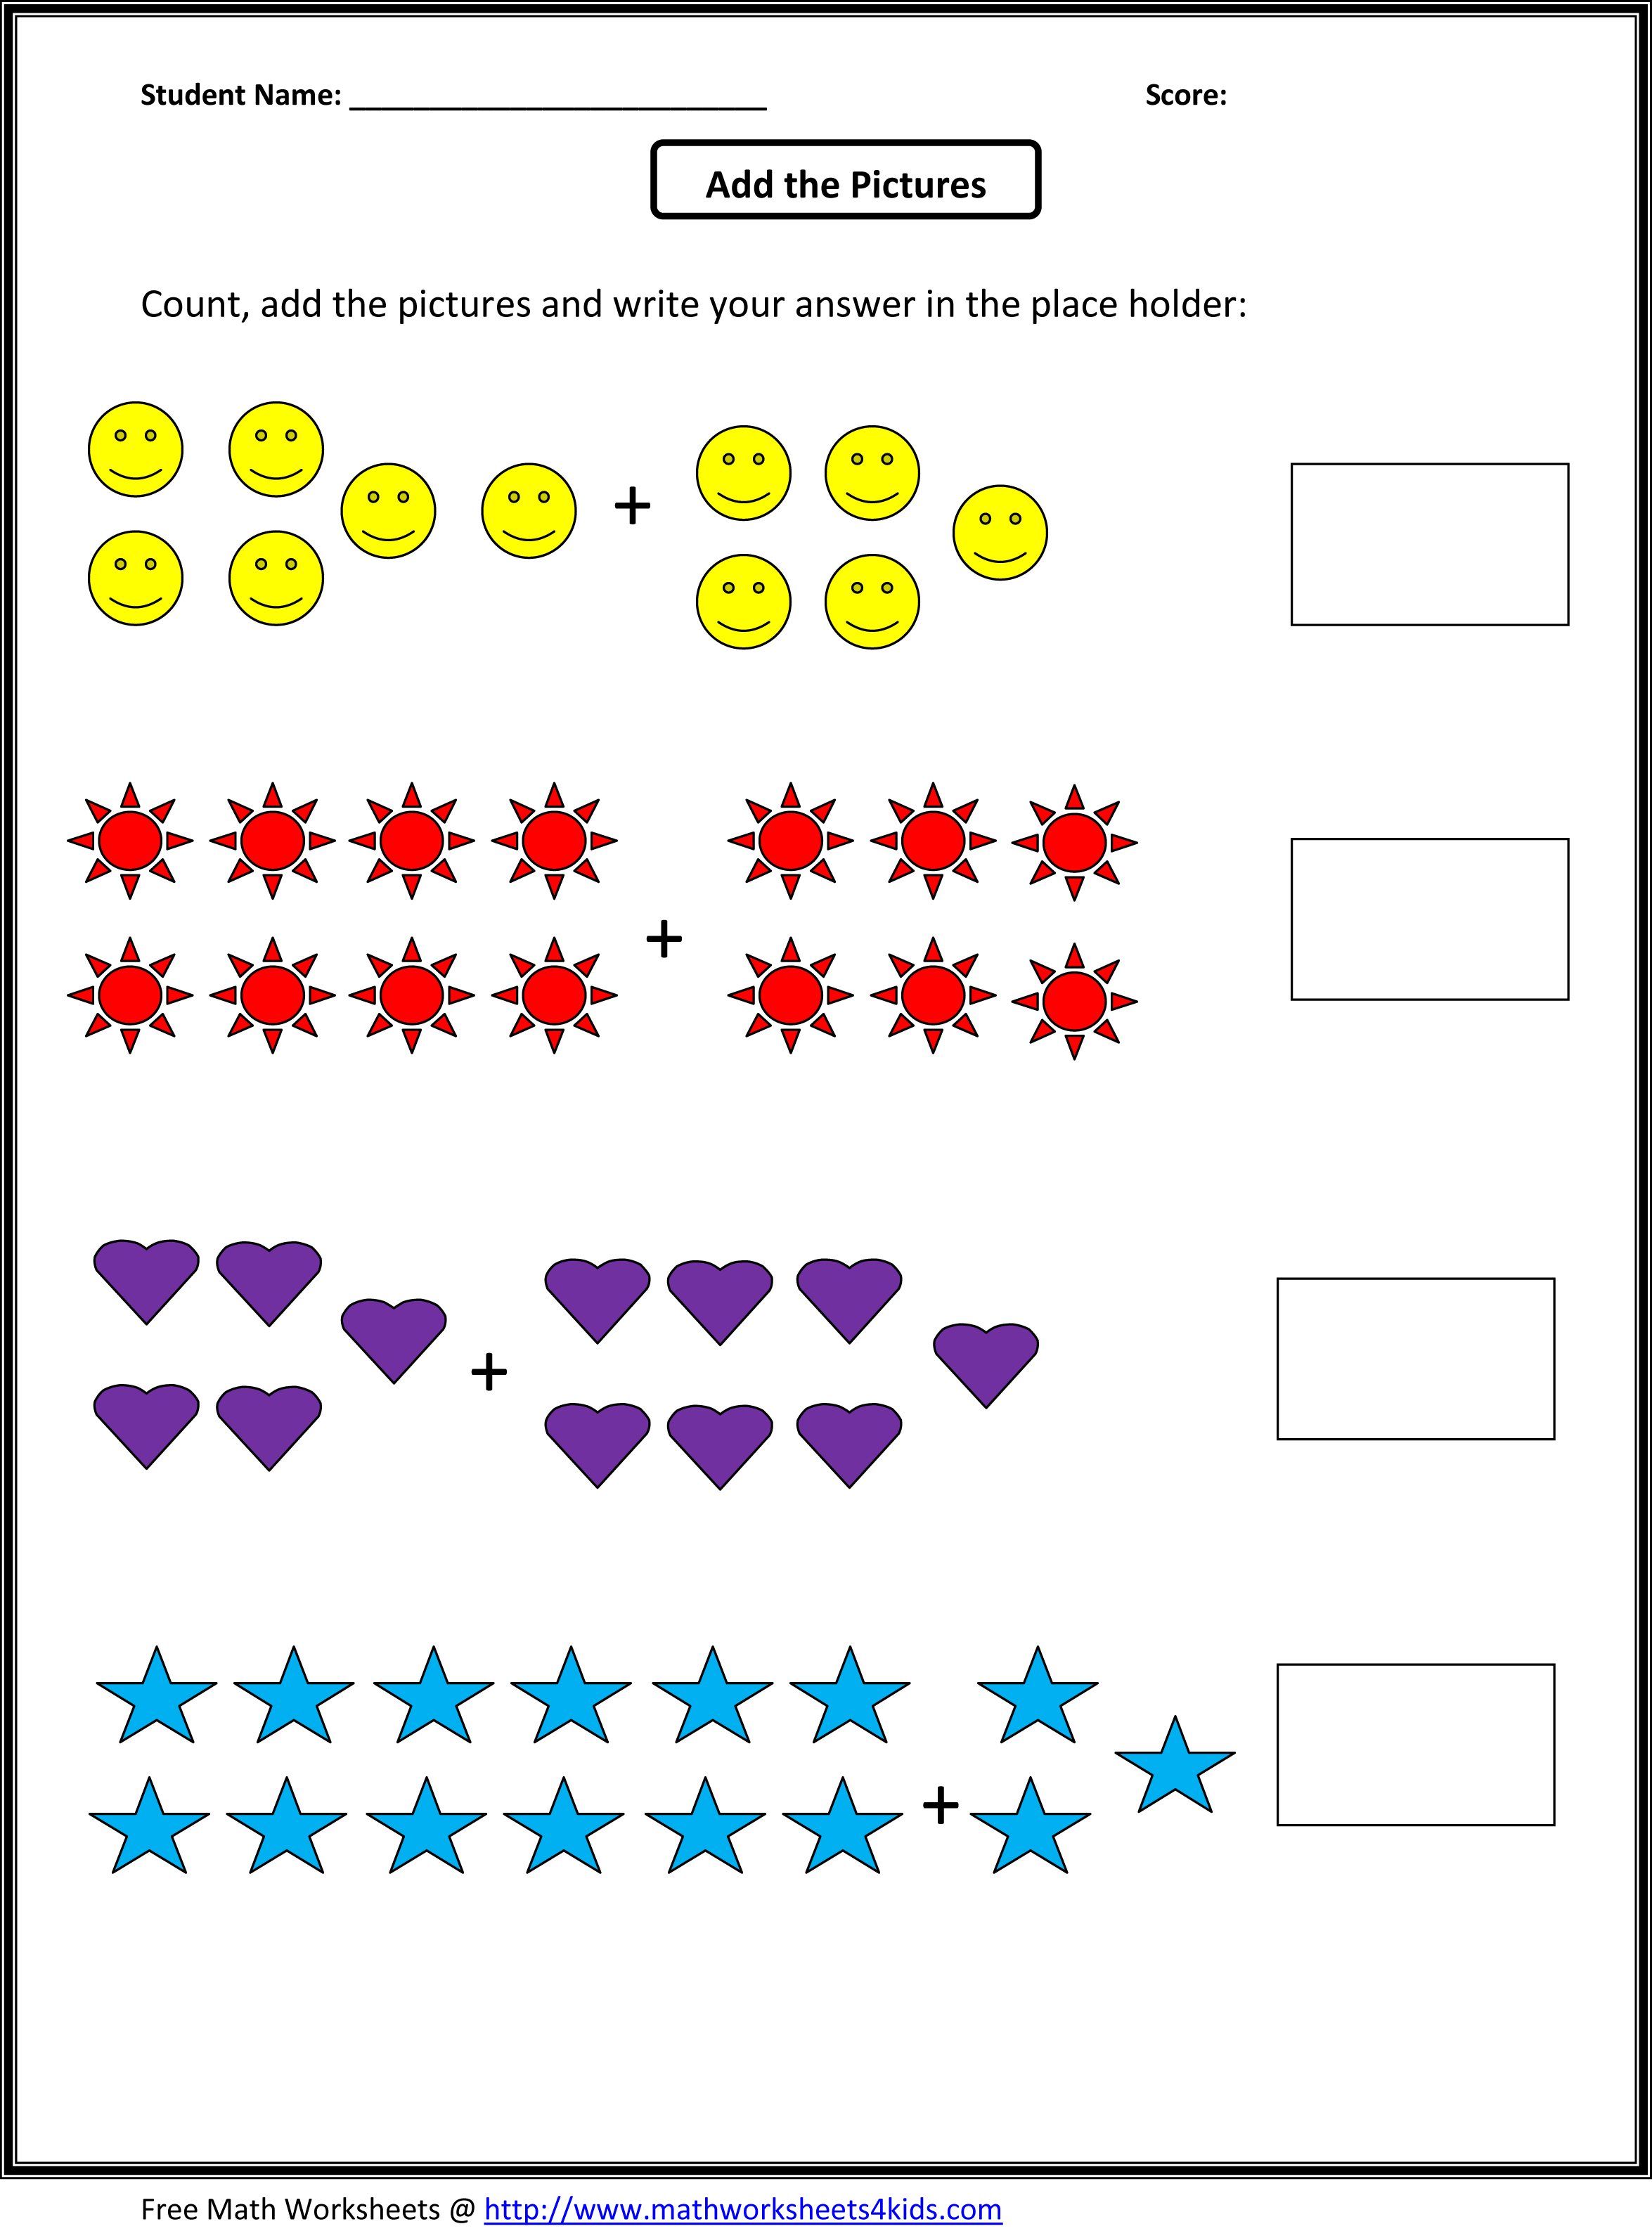 Weirdmailus  Marvellous Grade  Maths Worksheet  Reocurent With Fair Math Worksheets For St Grade Free  Reocurent With Astounding Thoughts And Feelings Worksheets For Children Also Make Math Worksheets In Addition Olympic Games Worksheets And Finding The Percent Of A Number Worksheet As Well As Subtracting Negative And Positive Numbers Worksheets Additionally Preschool Matching Worksheets From Reocurentcom With Weirdmailus  Fair Grade  Maths Worksheet  Reocurent With Astounding Math Worksheets For St Grade Free  Reocurent And Marvellous Thoughts And Feelings Worksheets For Children Also Make Math Worksheets In Addition Olympic Games Worksheets From Reocurentcom